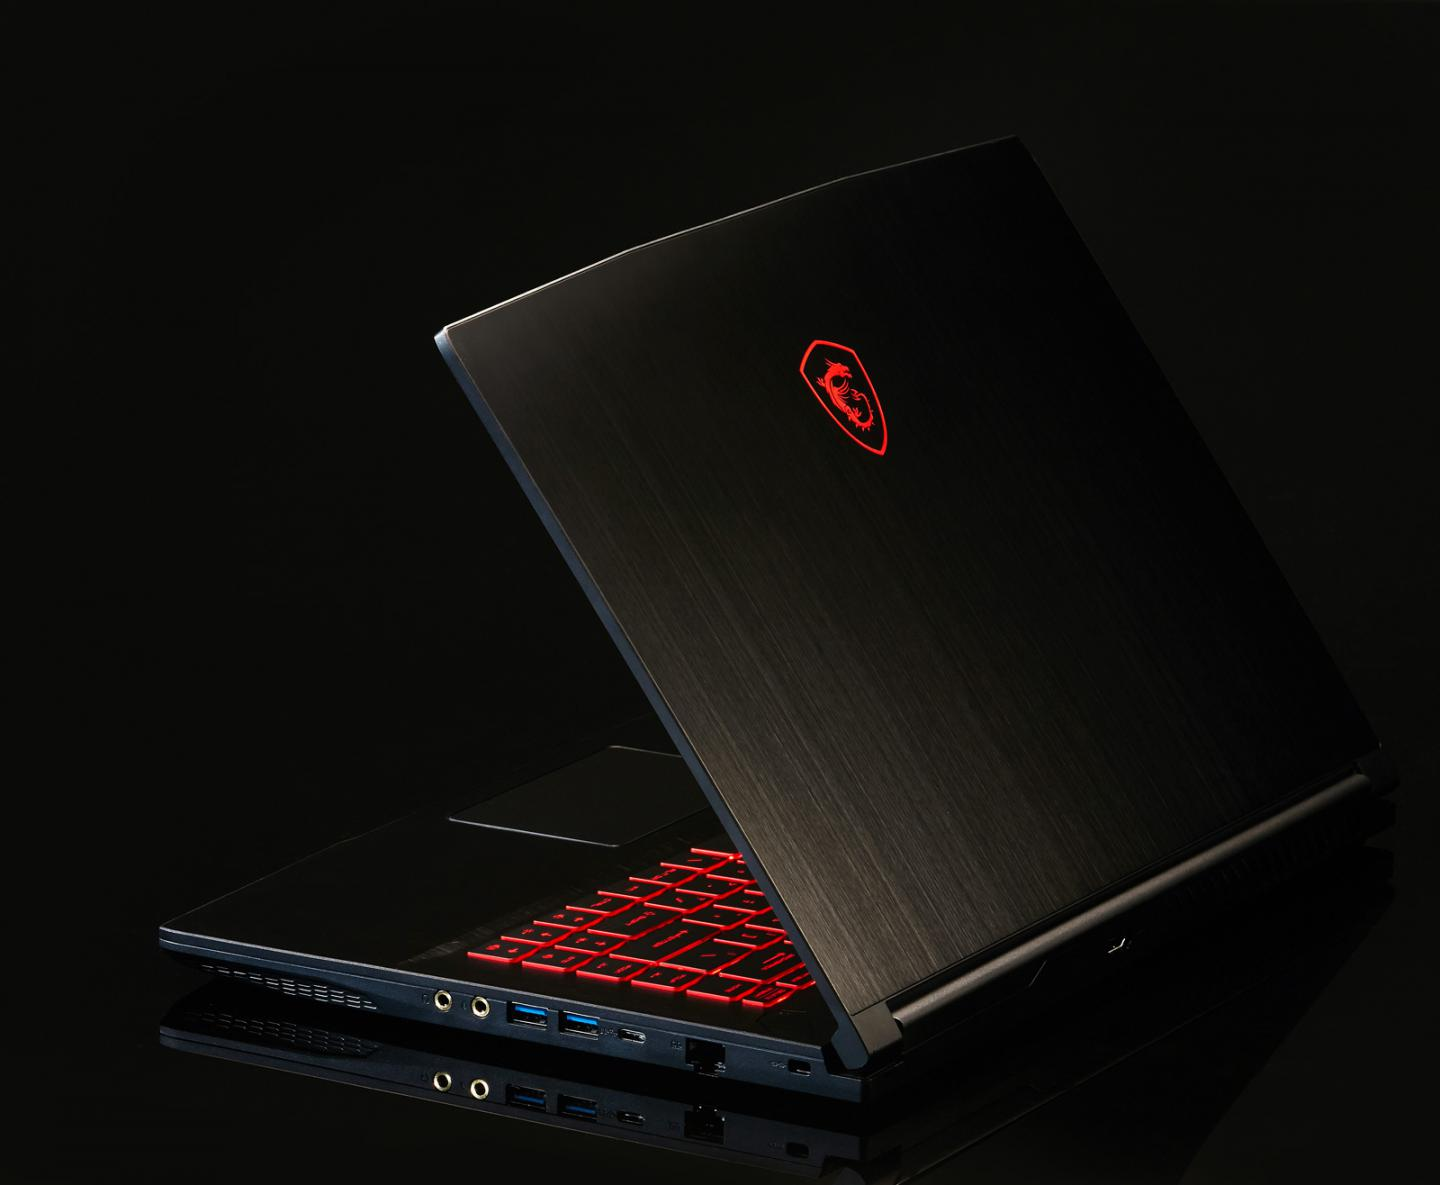 MSI Announcing New GF63 and PS42 Laptops with Thin Bezel Design